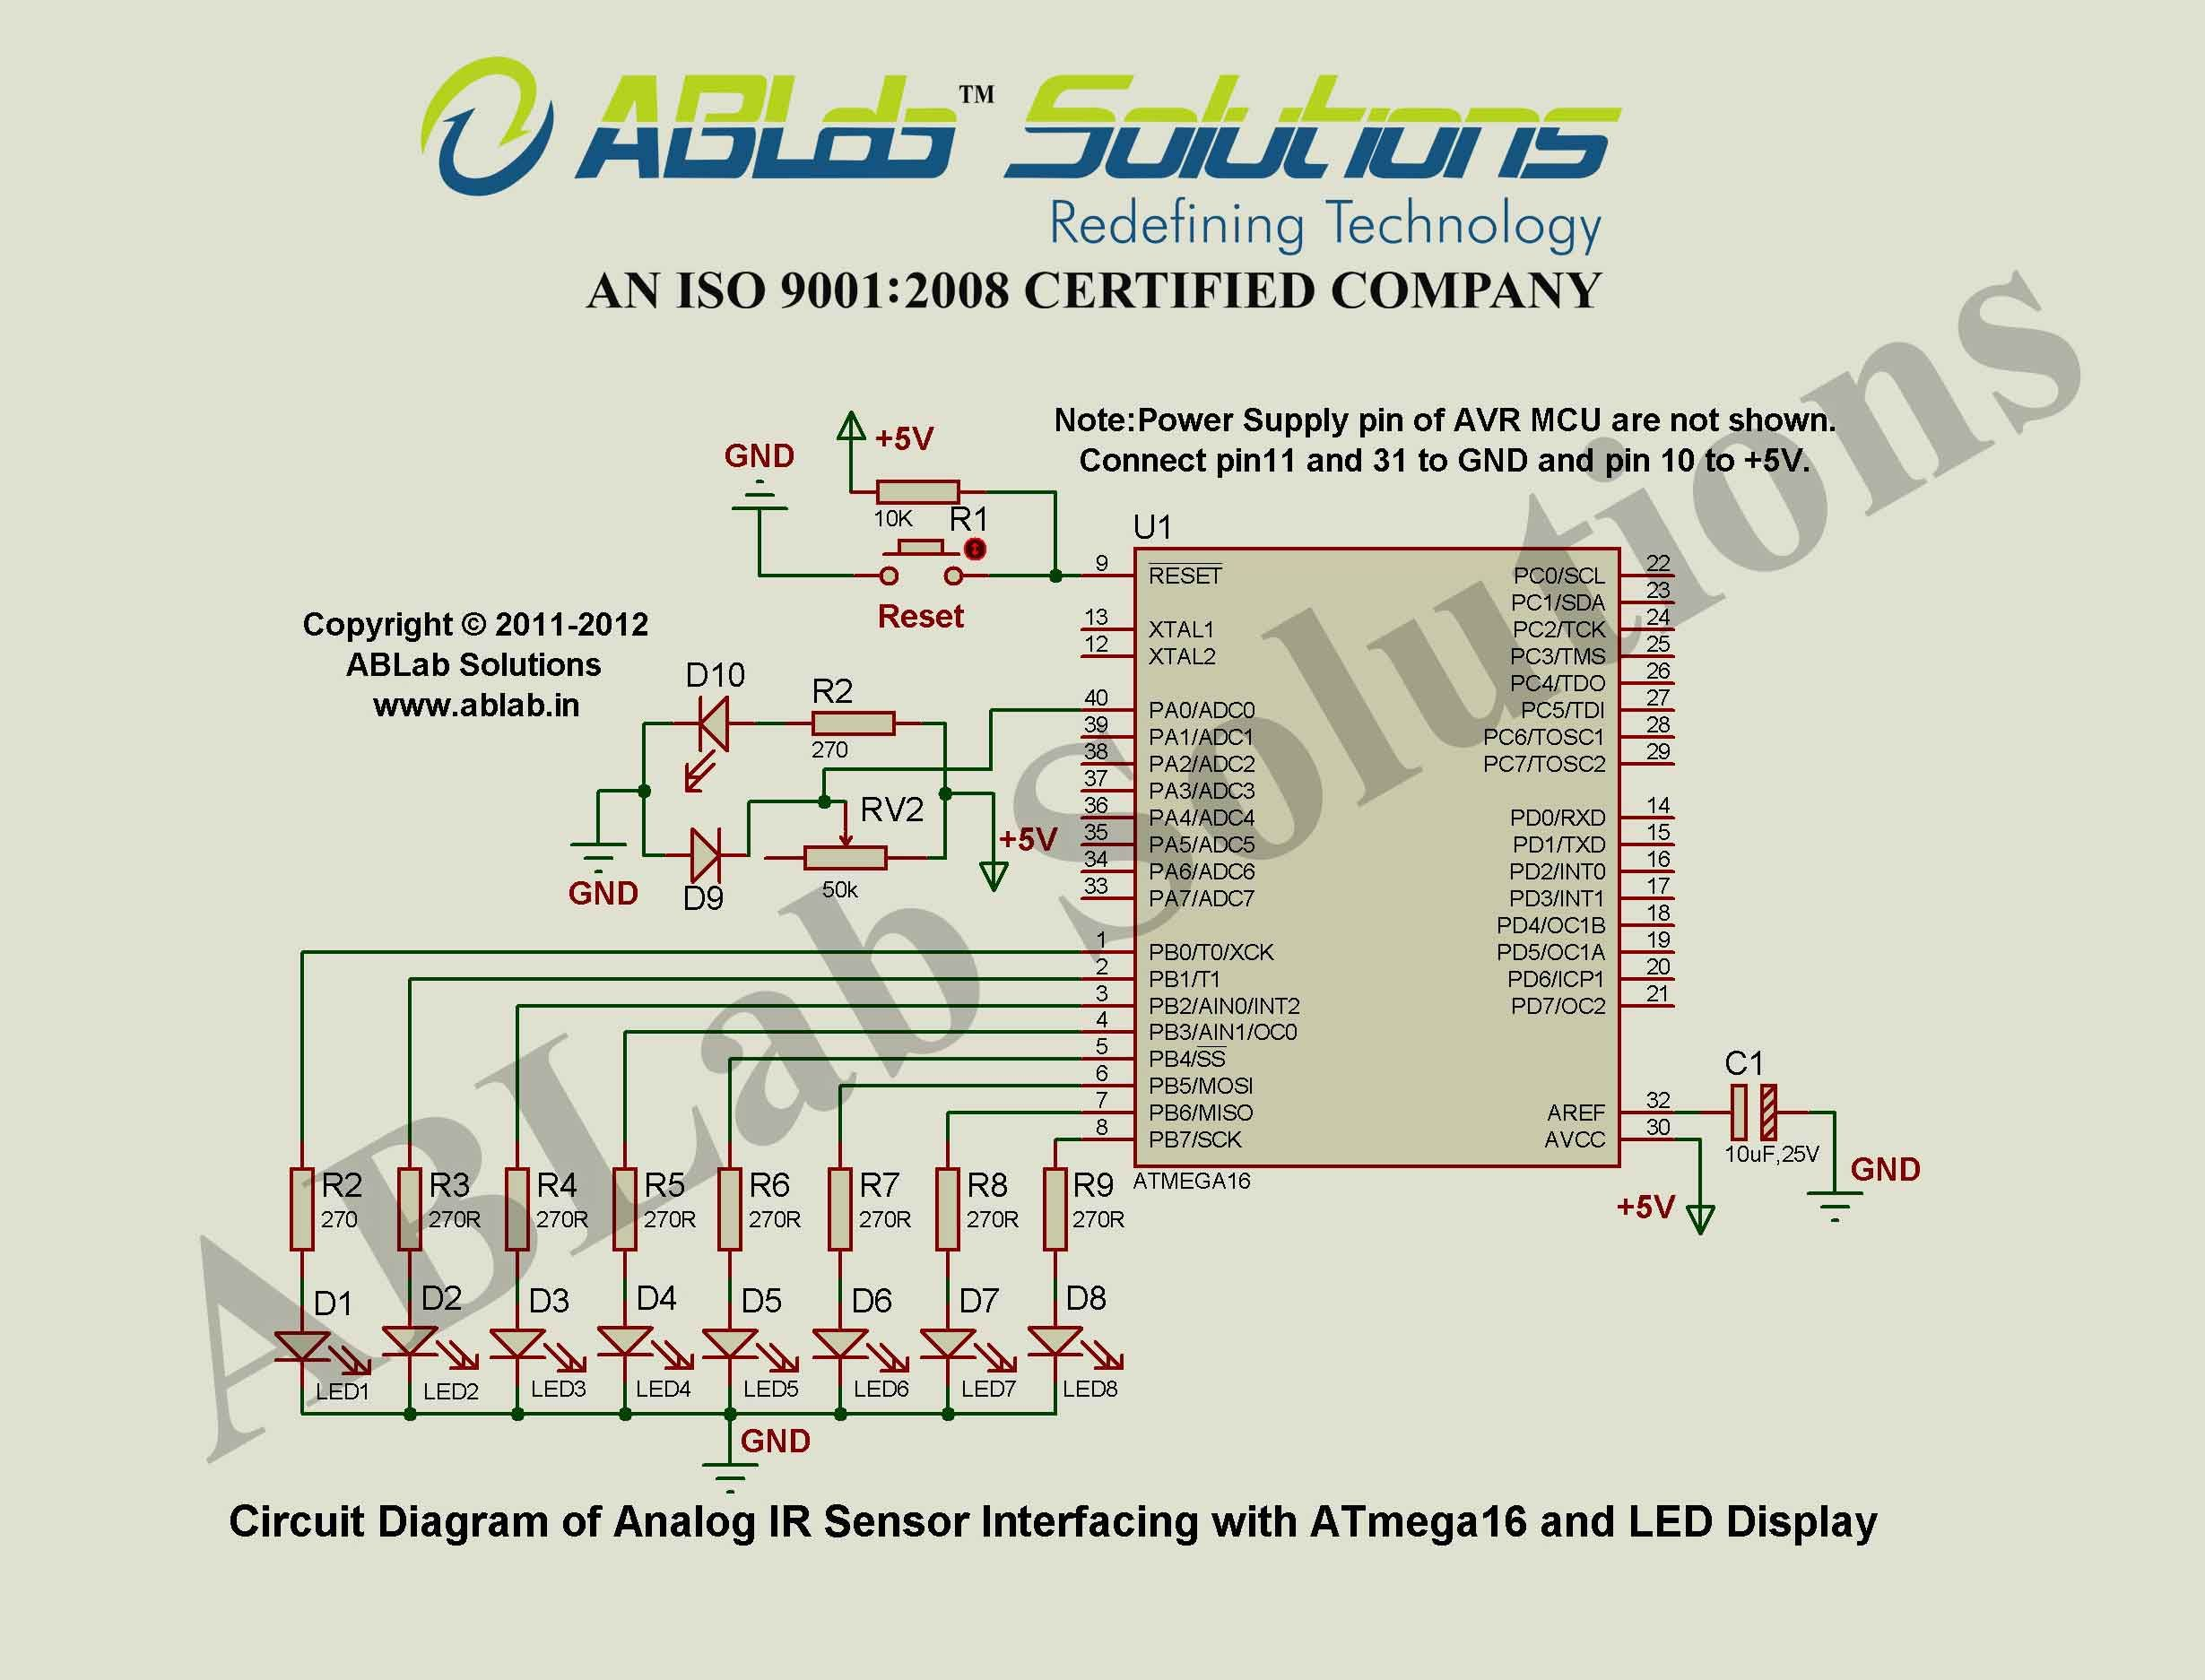 Analog ir sensor interfacing with avr atmega16 microcontroller and analog to digital converter of avr microcontroller with led display circuit diagram ablab solutions pooptronica Gallery